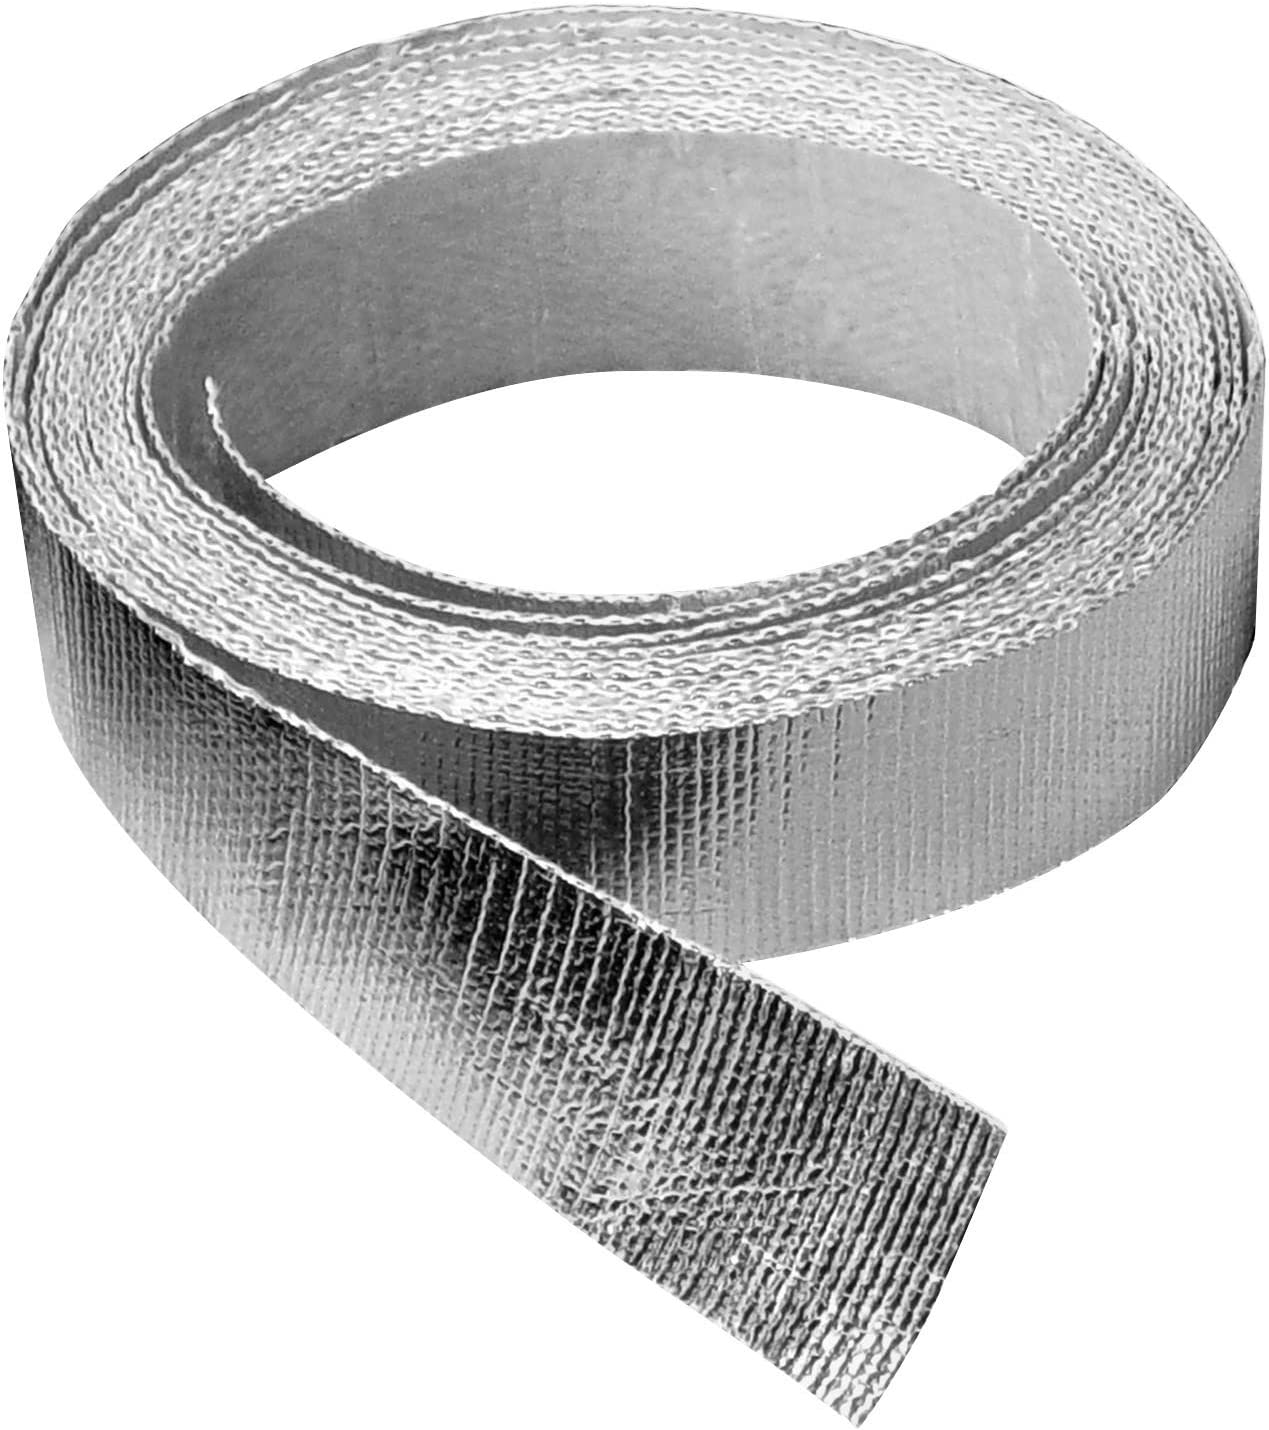 Thermo-Tec 14002 Thermo-Shield Radiant Heat 1 Popularity x 1.5